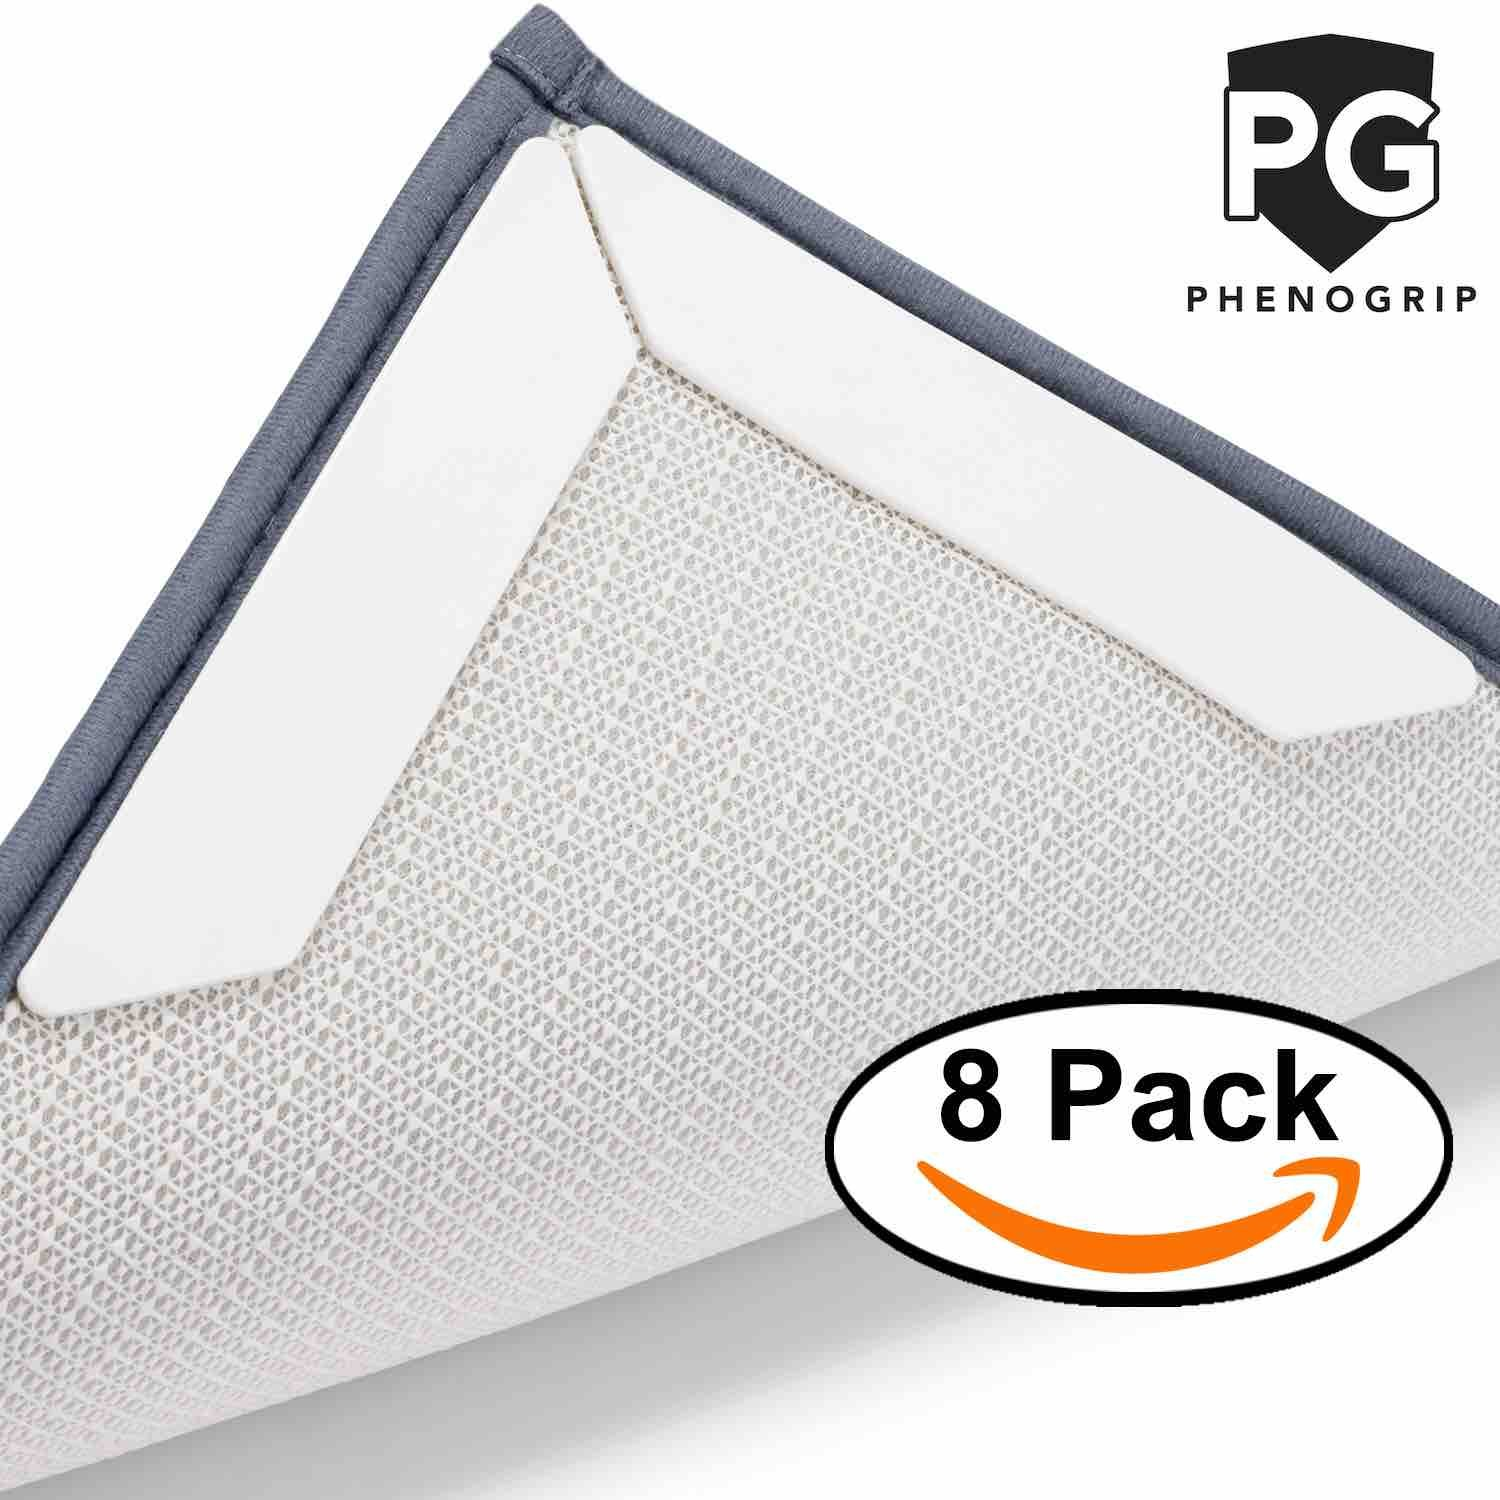 Phenogrip Non-Slip Rug Grippers – Anti-Slip Rug Gripper for Carpets, Area Rugs, Mats, Hall Runners, Hardwood Floor, Tiles| Anti-Skid Reusable Gripper Tape Prevents Curling, Flattens Corners (8 PACK)